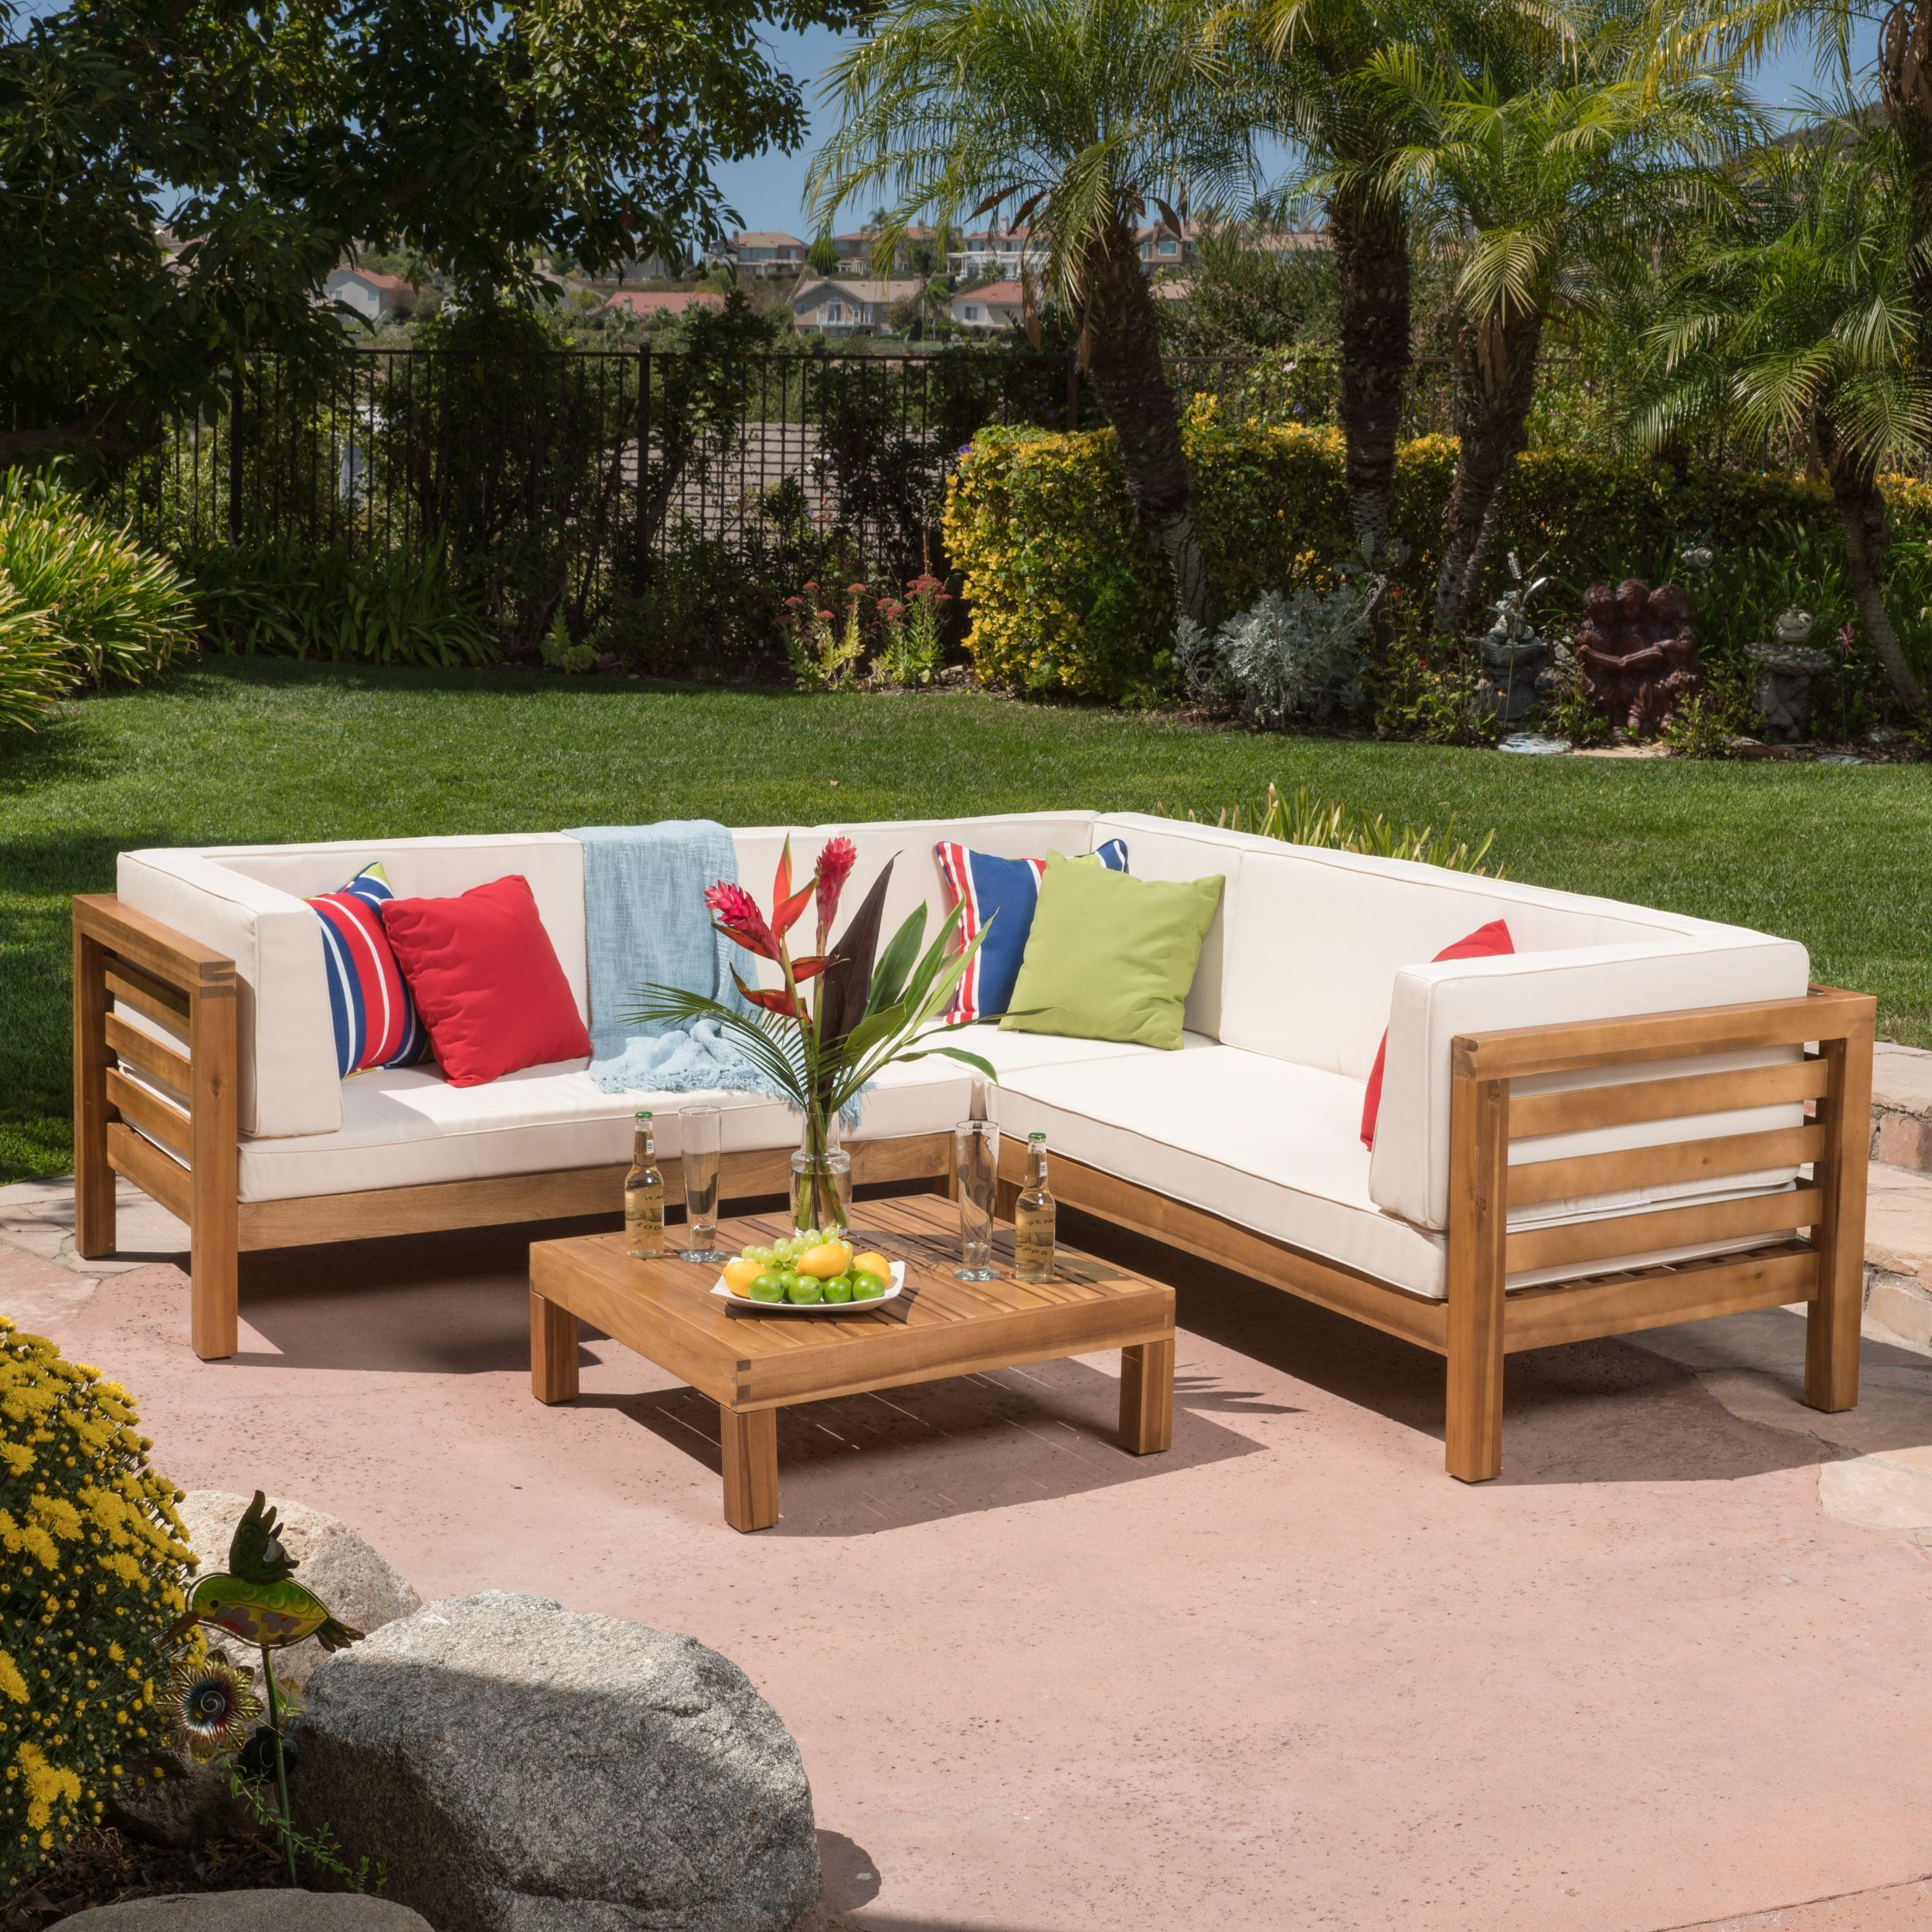 Delicieux Oana Outdoor 4 Piece Acacia Wood Sectional Sofa Set With Cushions By  Christopher Knight Home (White With Grey Teak Finish), Size 4 Piece Sets,  ...